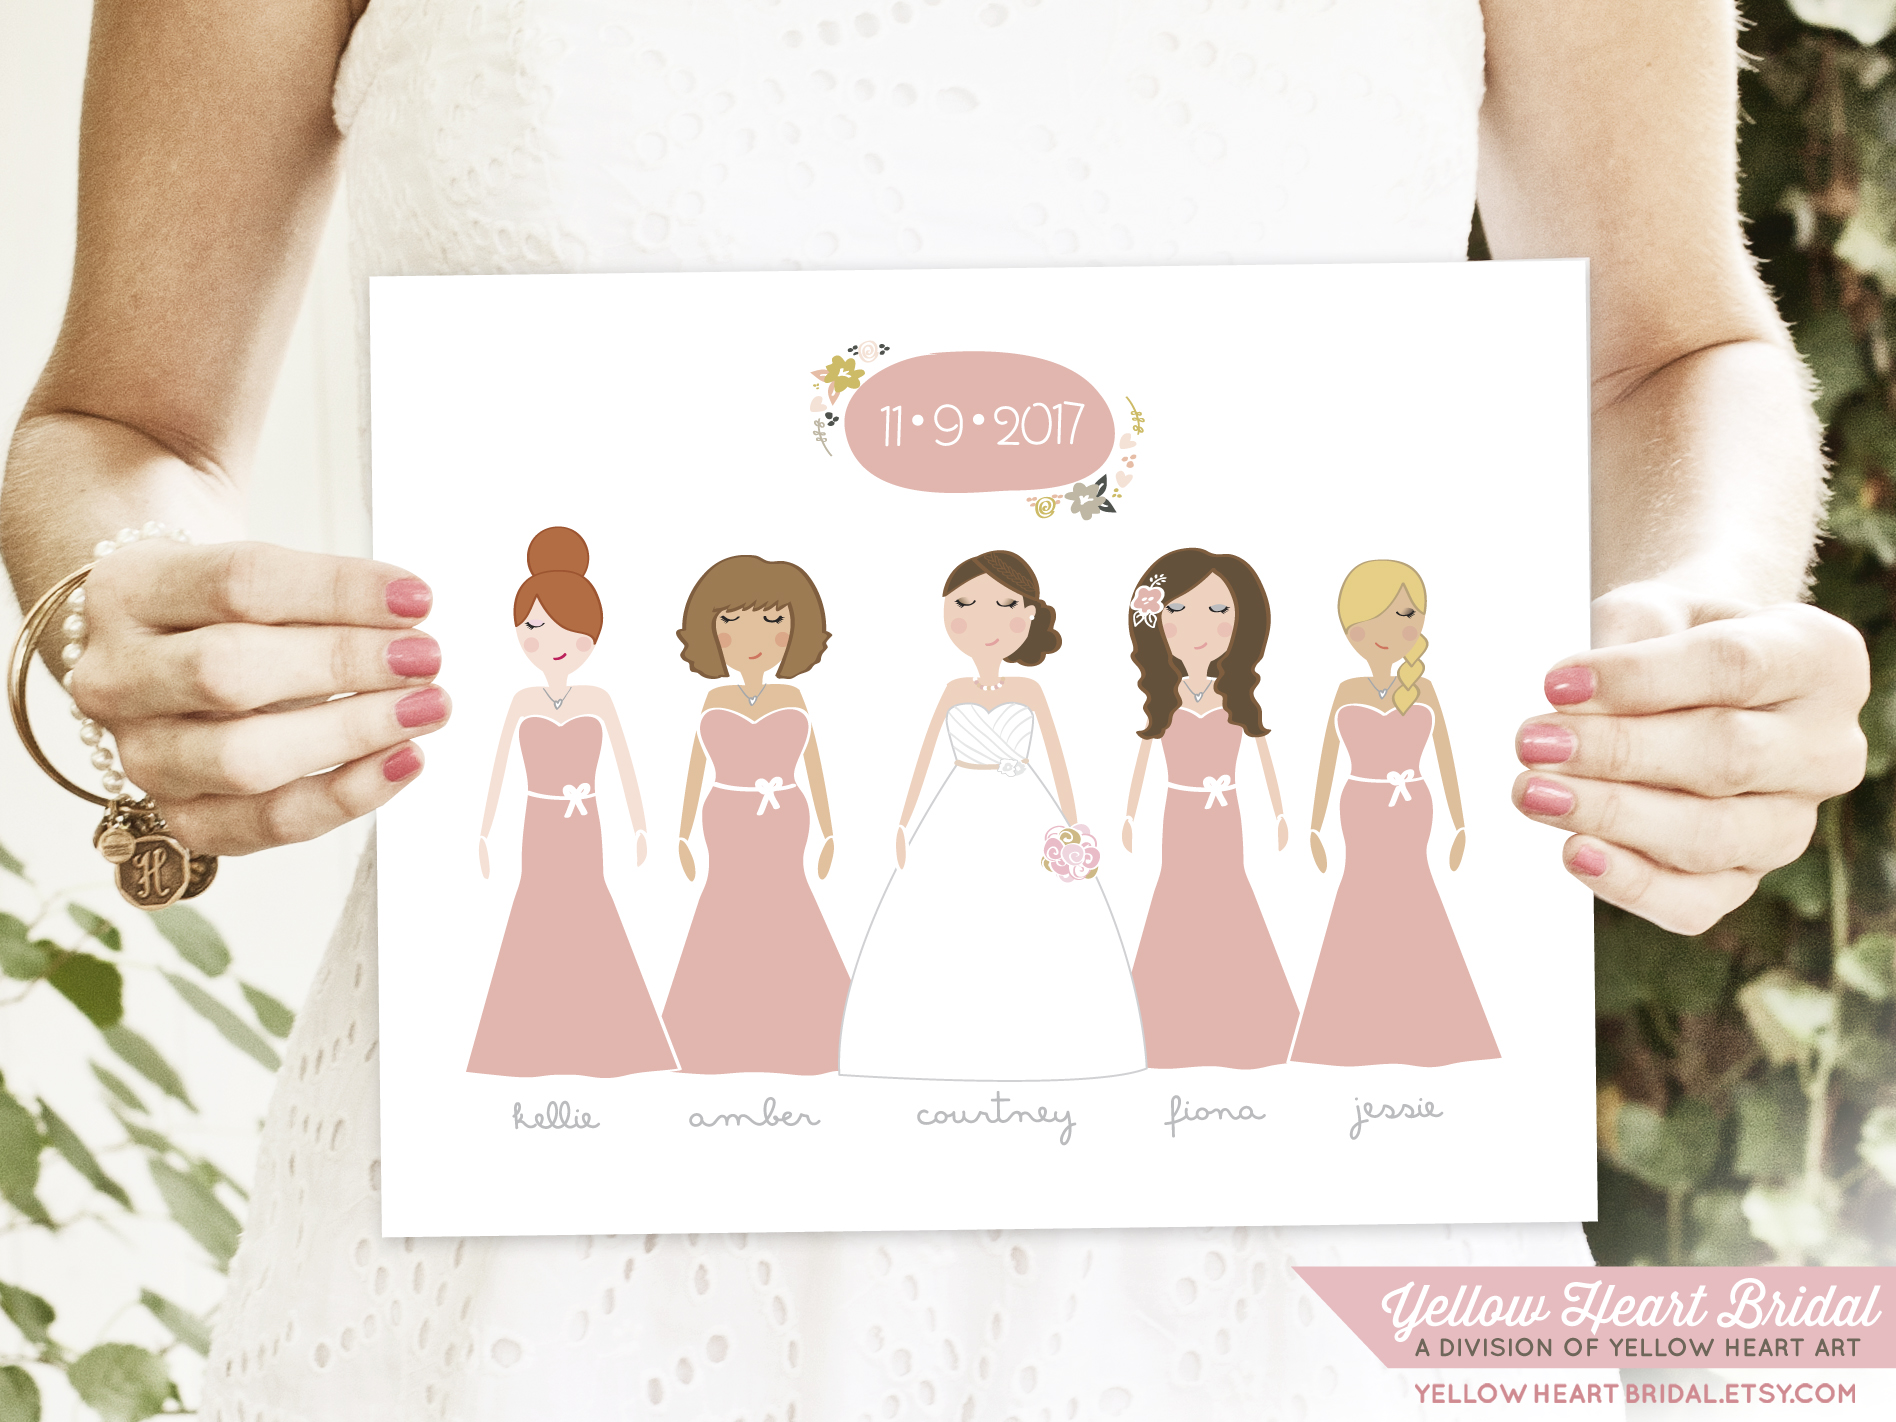 Yellow Heart Bridal custom bridesmaid portraits (1)